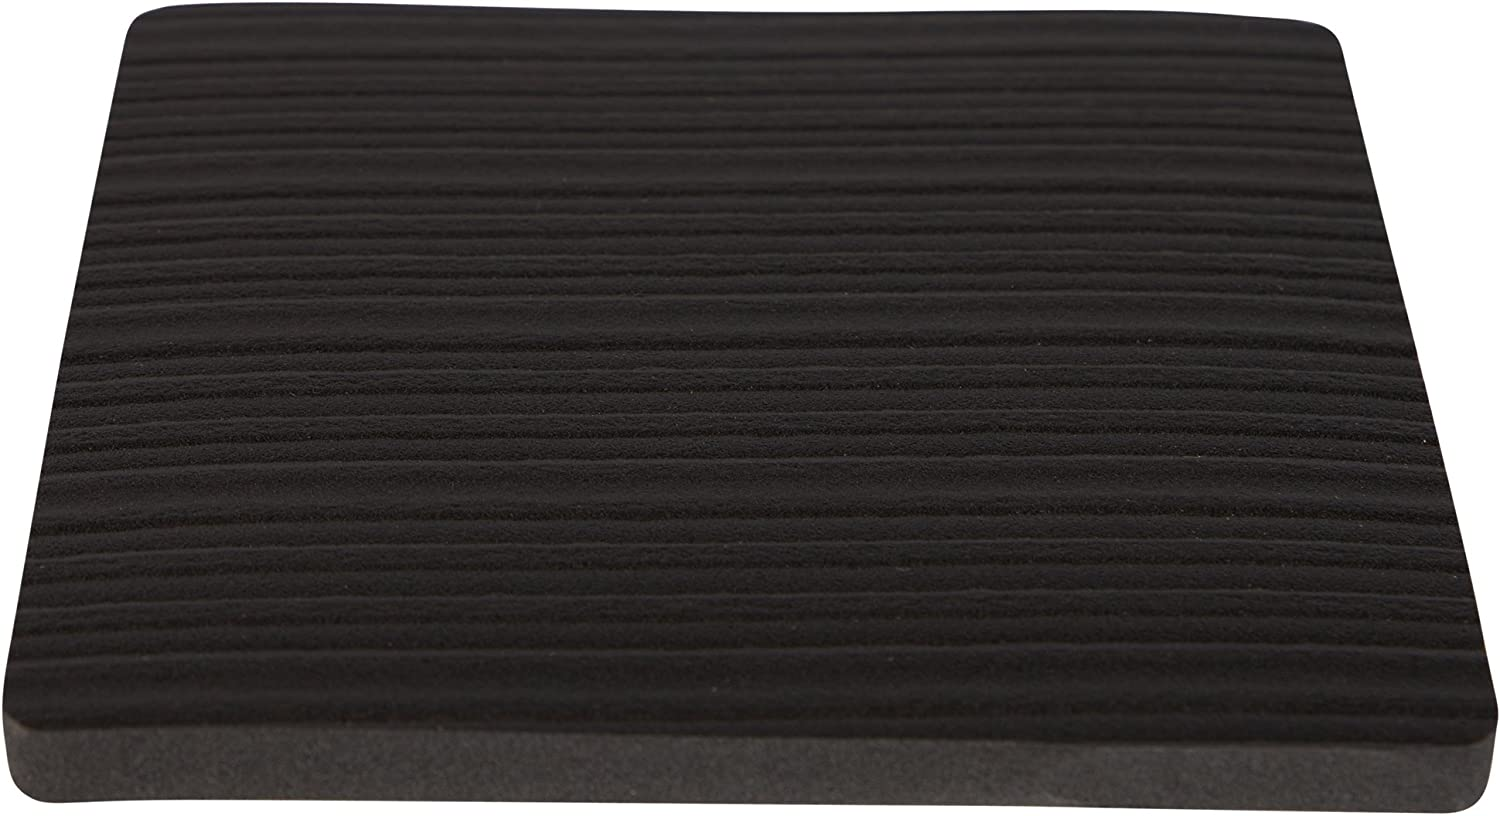 Stay! Furniture Pads, Square Furniture Grippers, Gripper Pads, Protect Your Floor | Works on Hardwood Floors and Carpet, Anti-Slip | Square, Black, Set of 4 (6 inch)